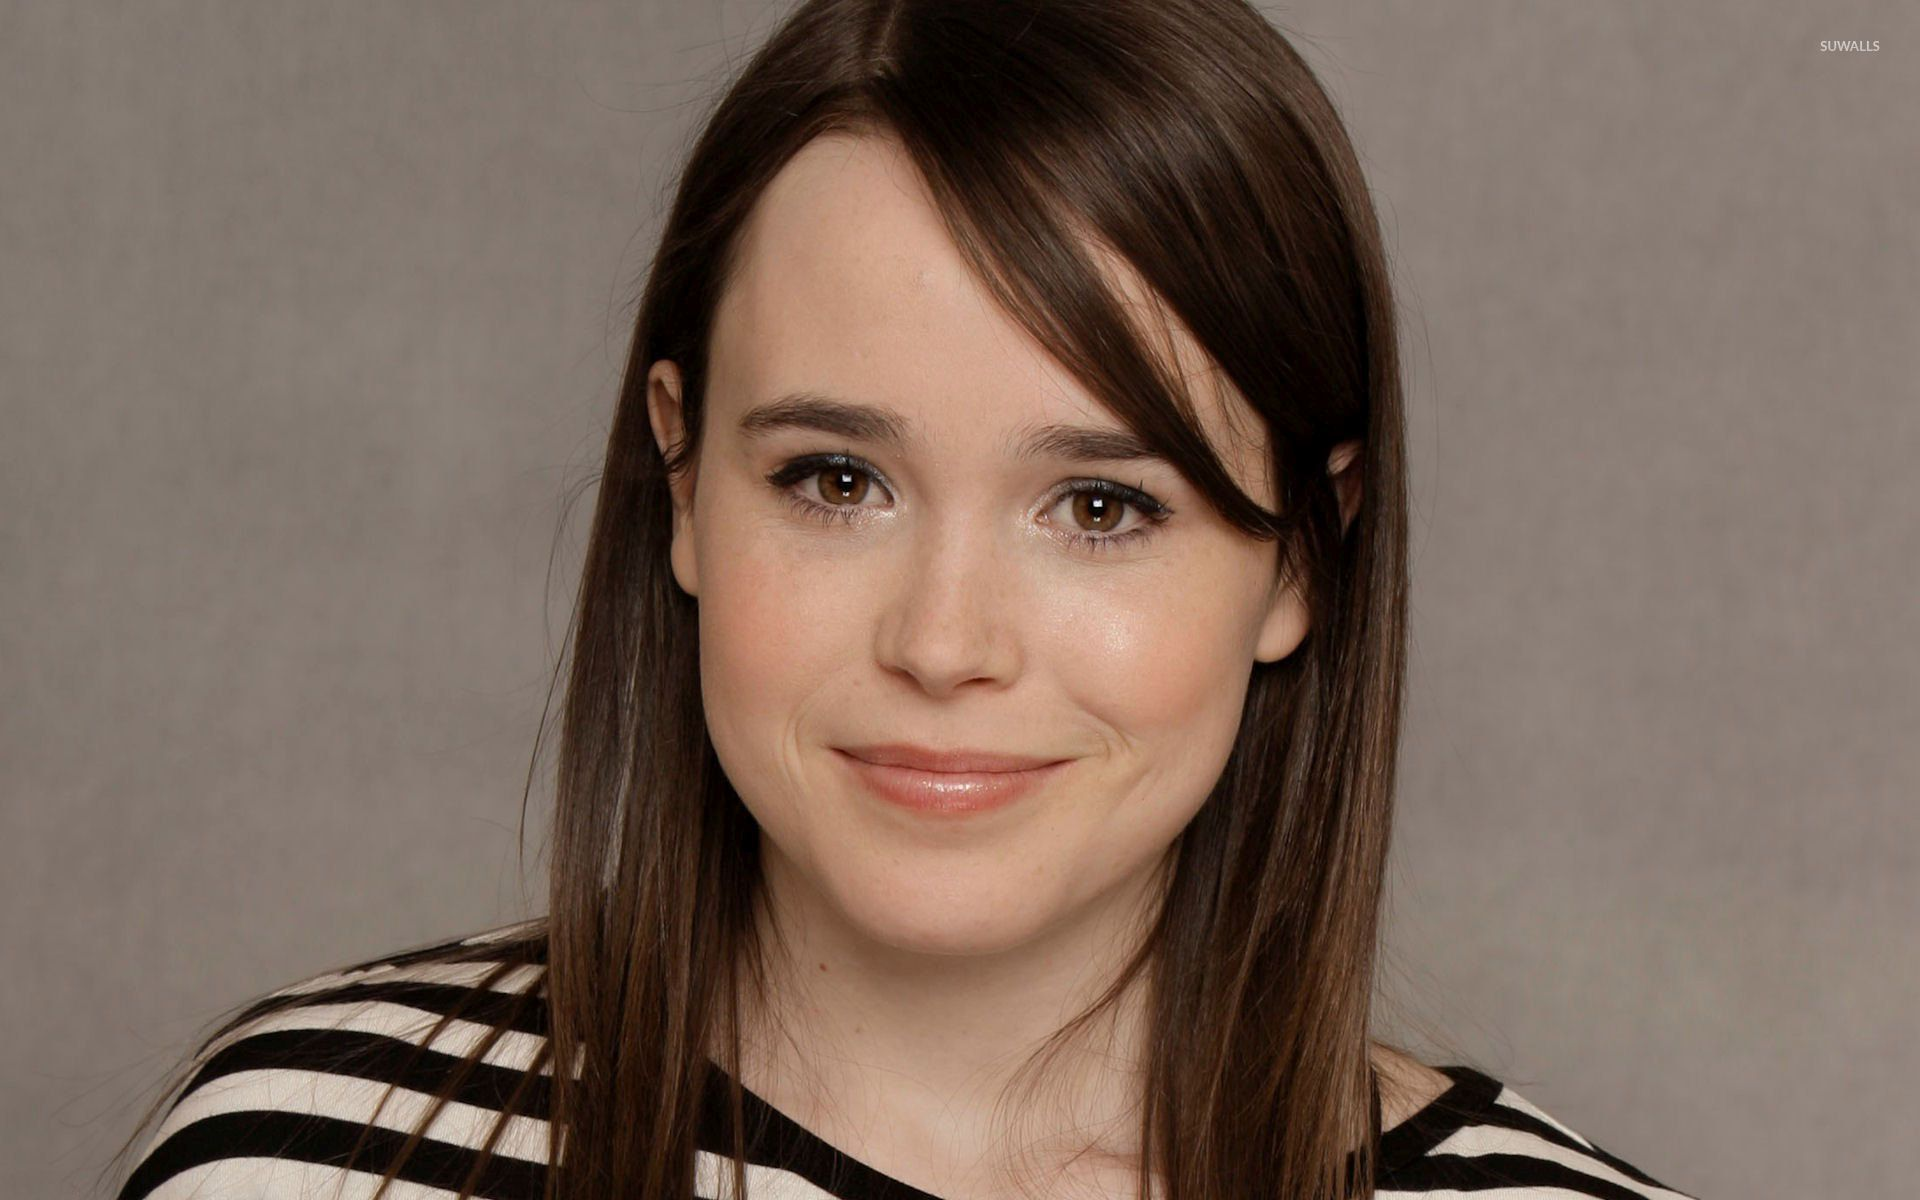 Kisses Wallpapers With Quotes Ellen Page With A Black And White Top Wallpaper